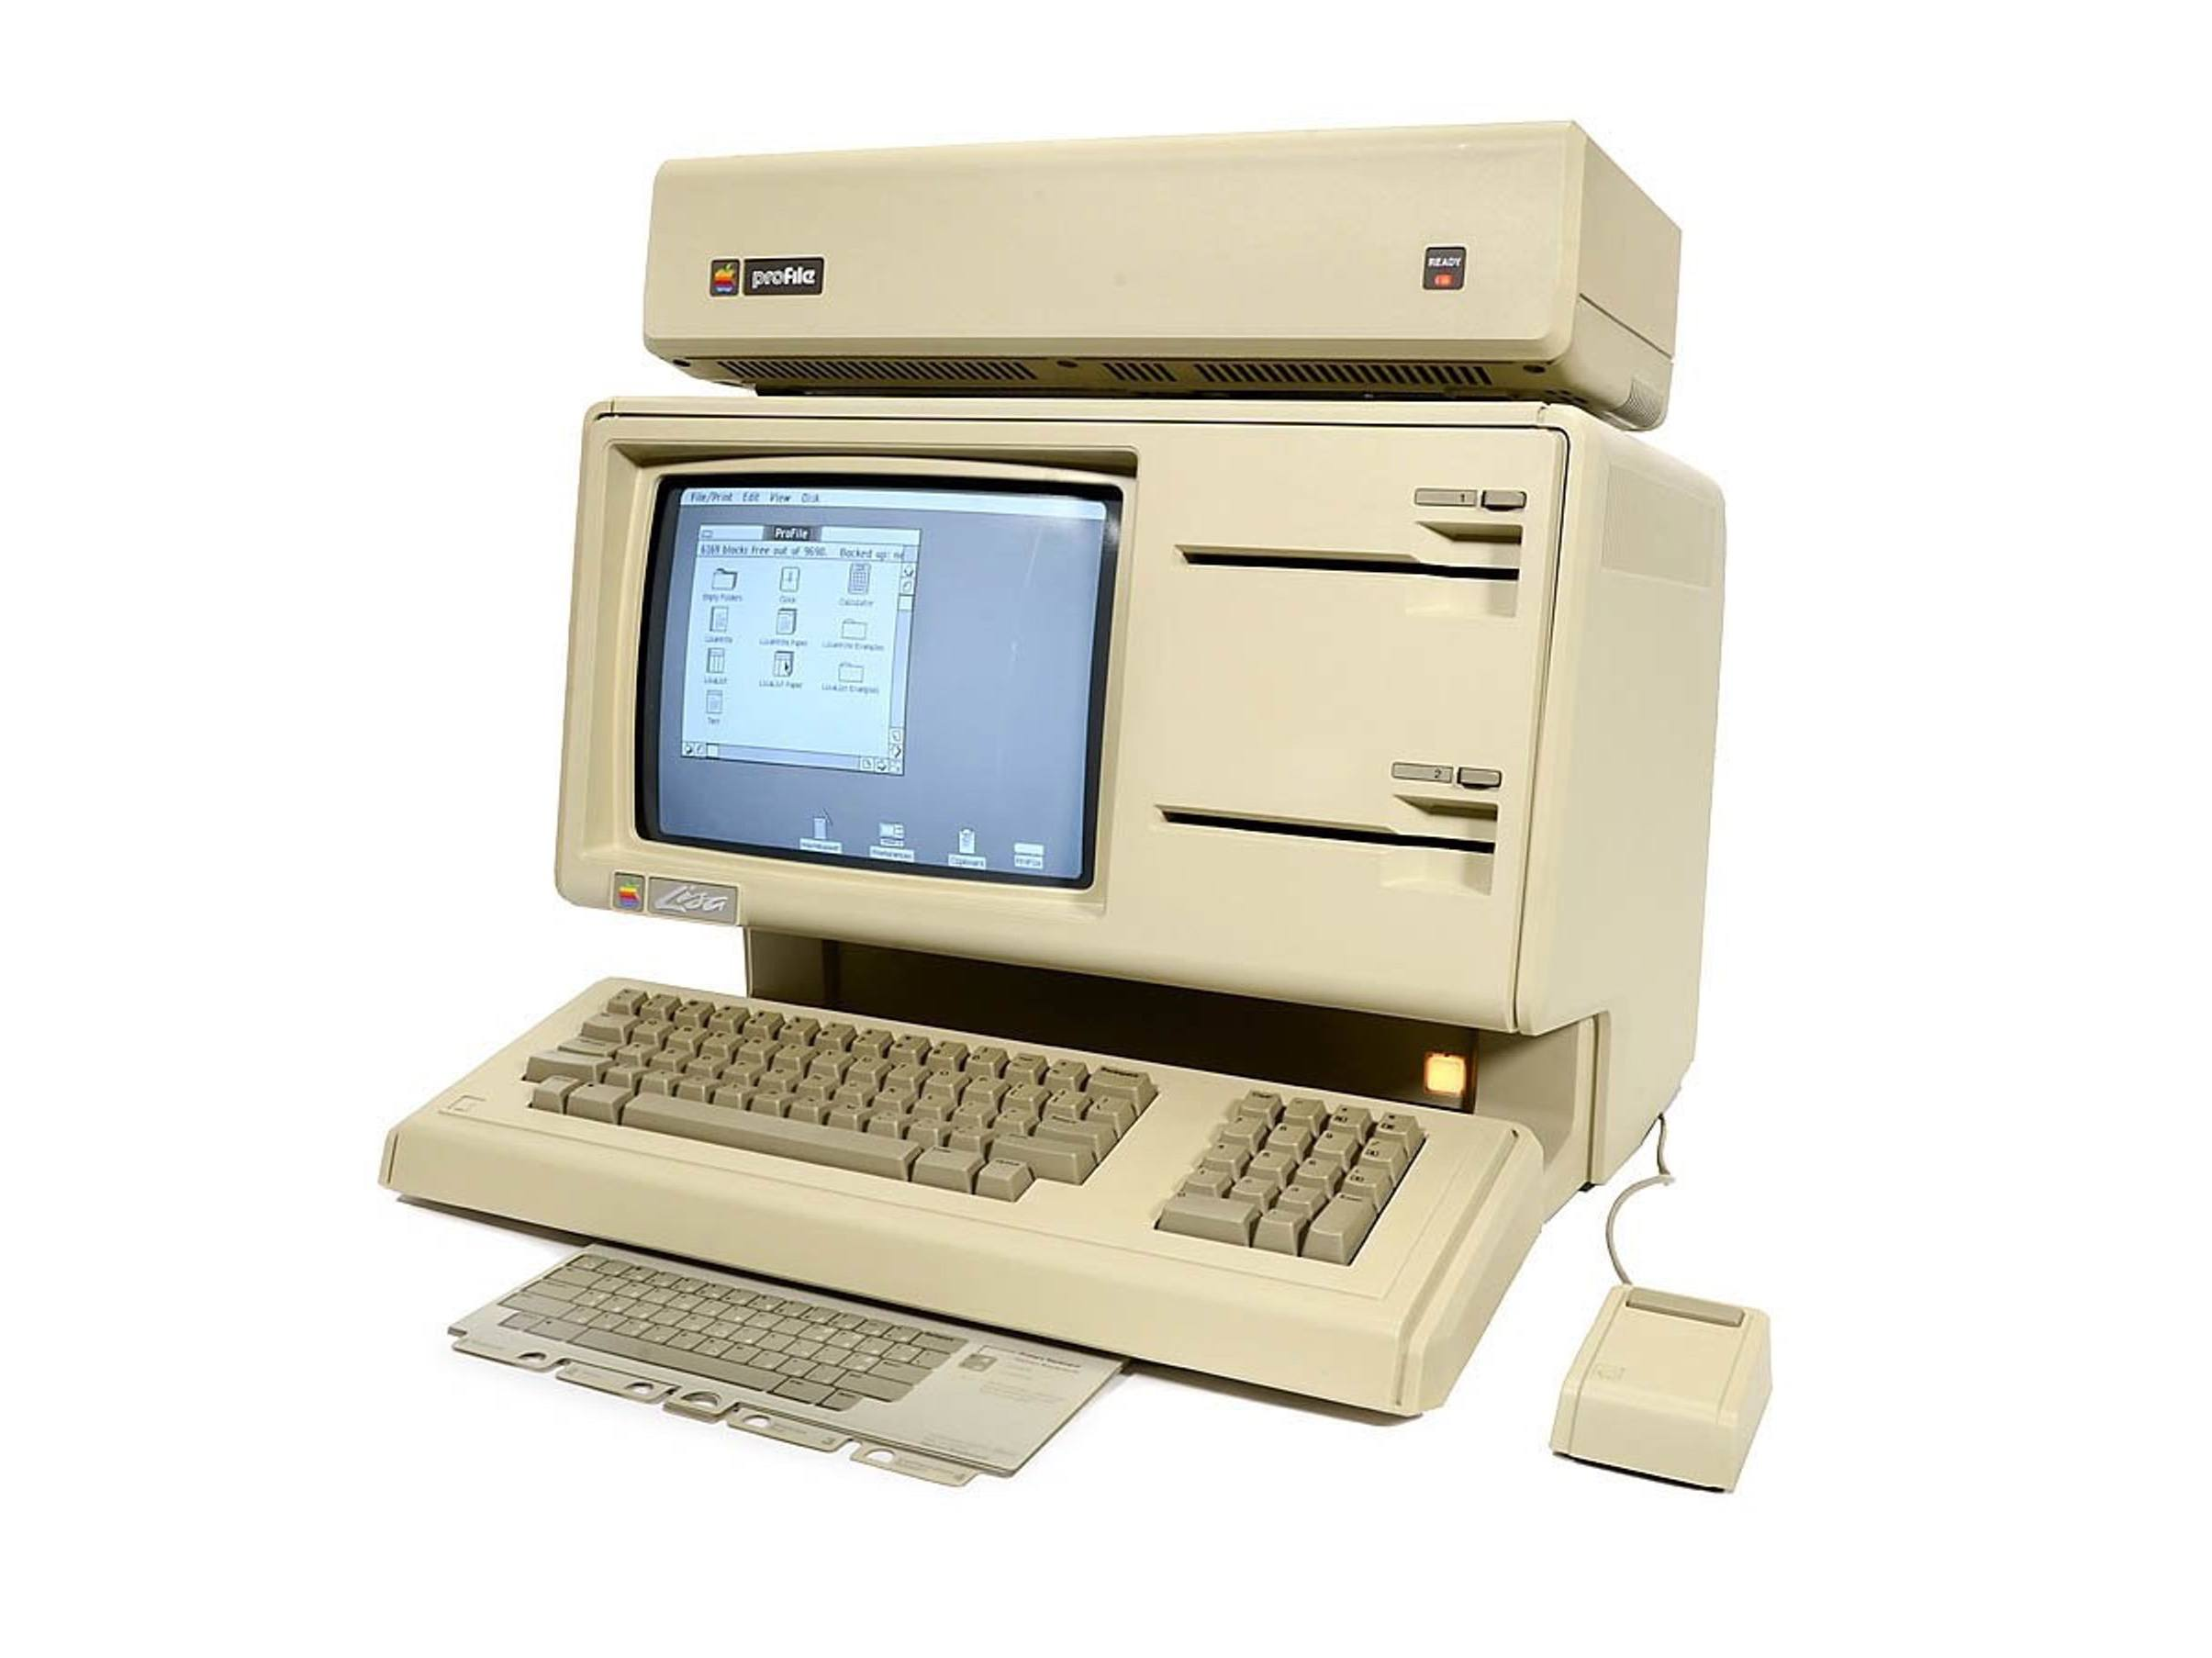 Apple Lisa with optional ProFile hard drive